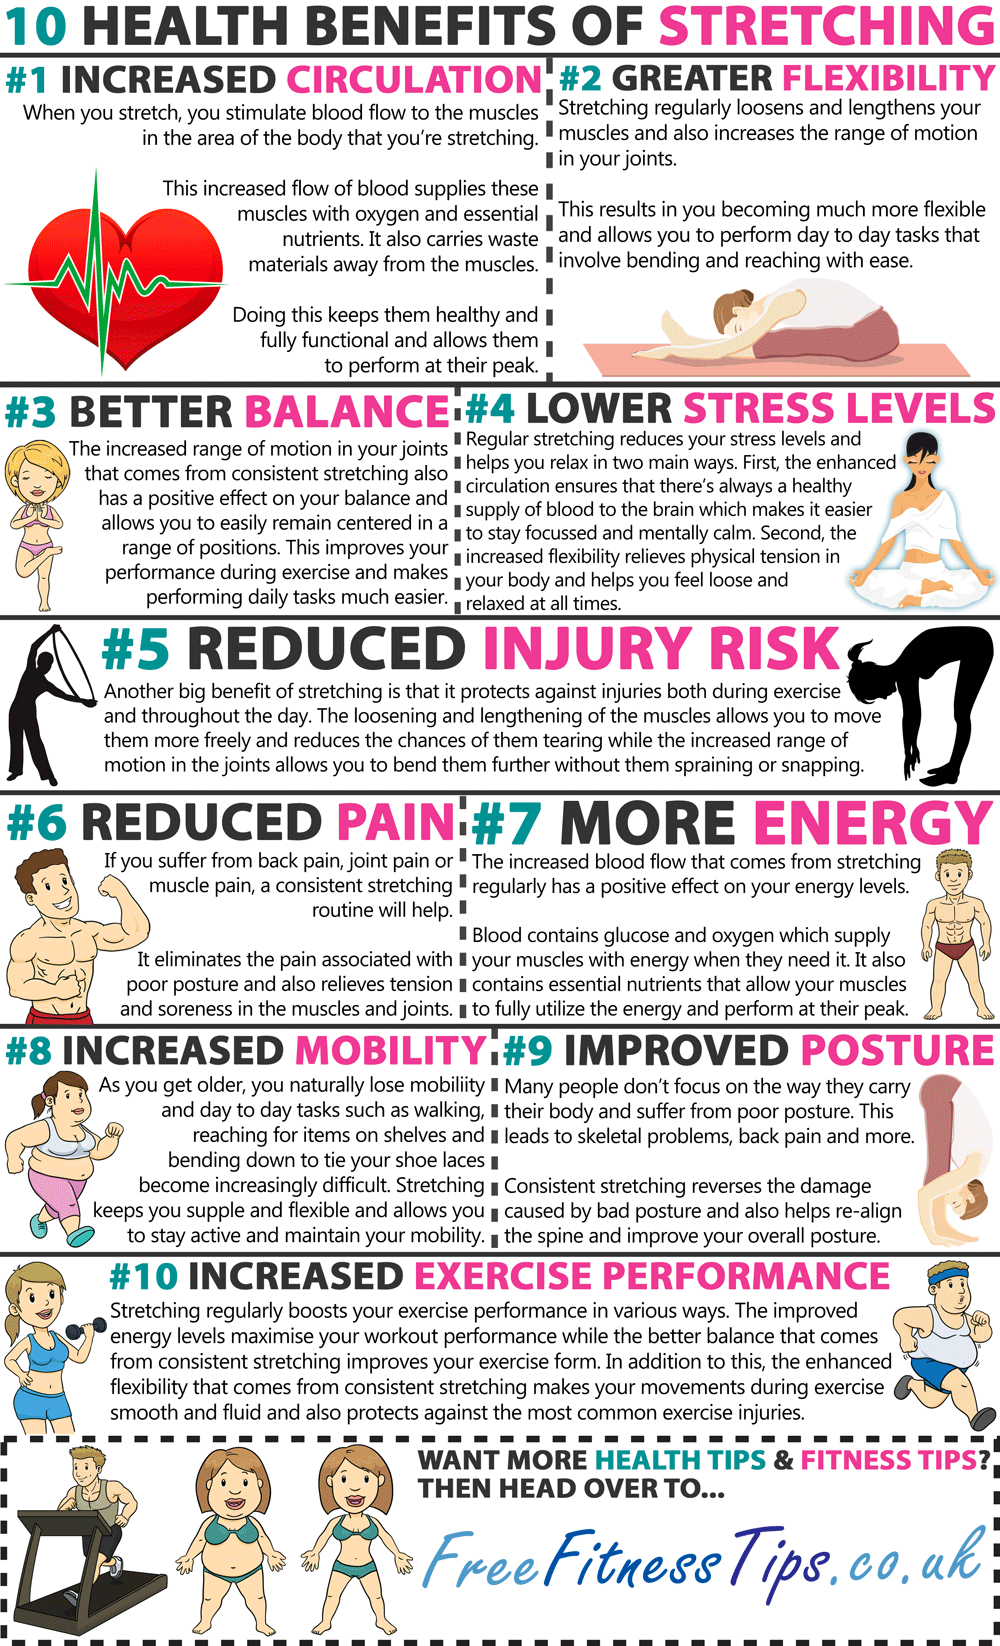 Stretching Can Benefit Your Health Tremendously - Infographic